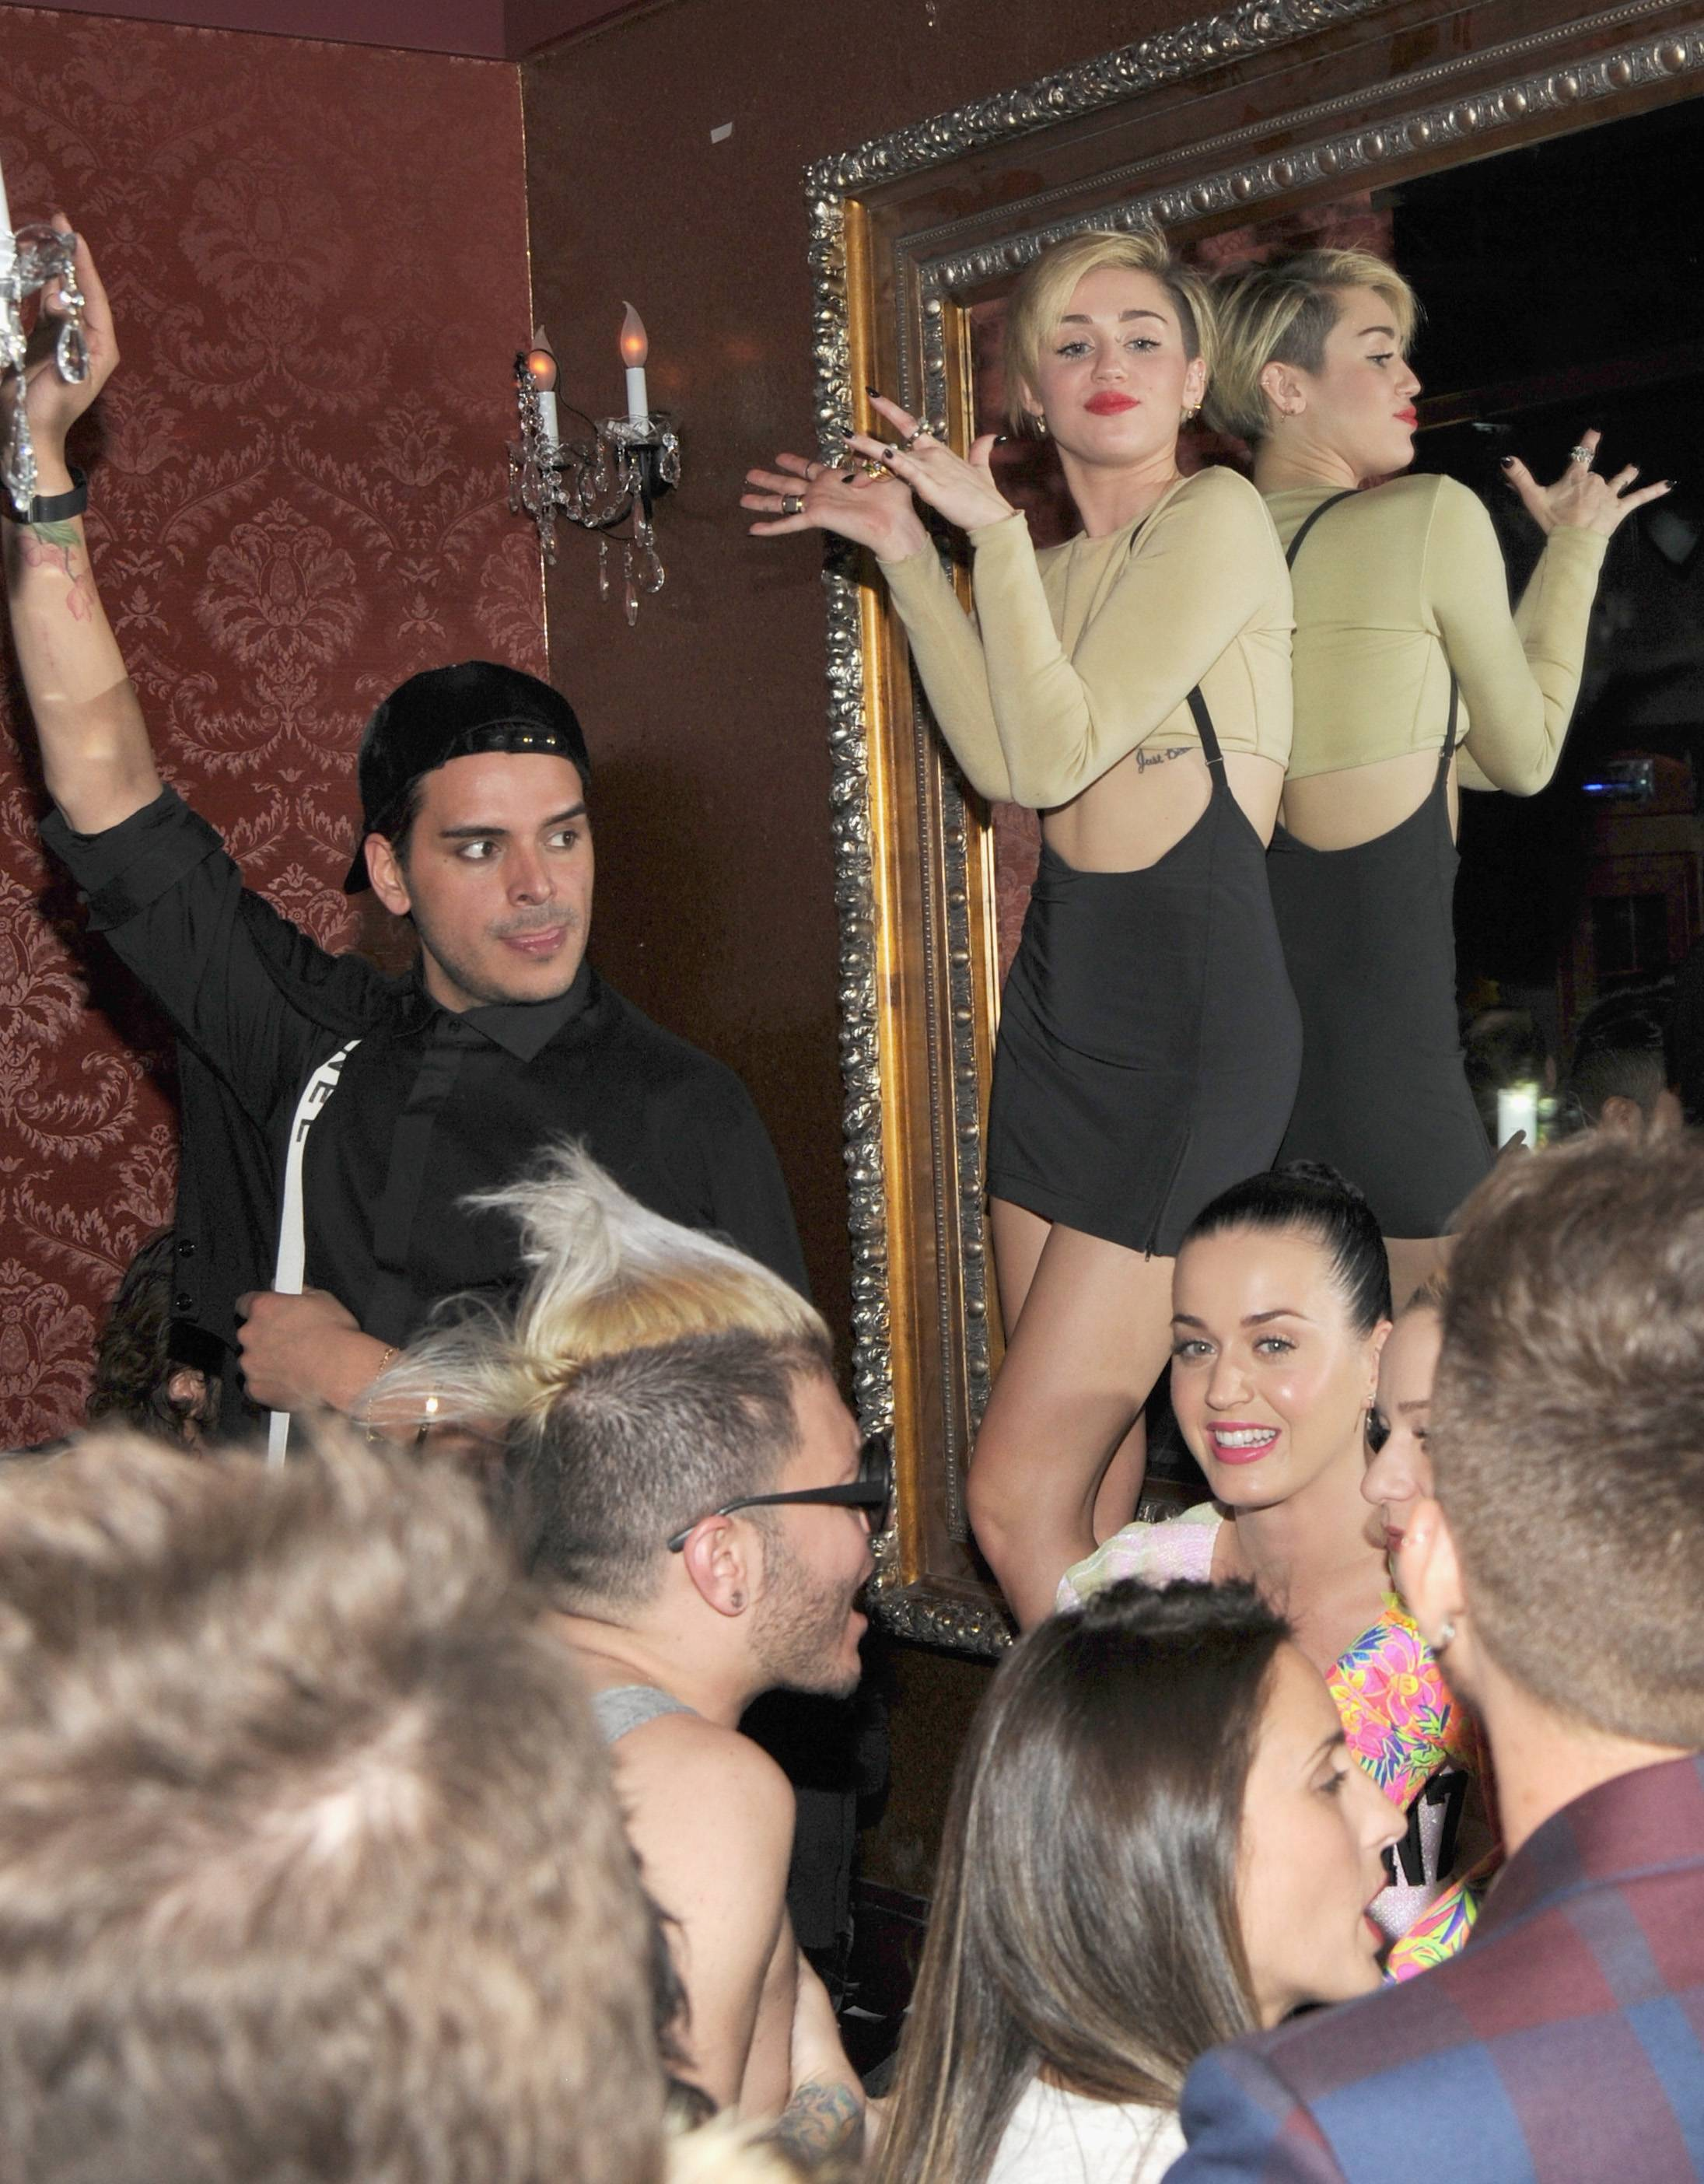 Miley Cyrus Unveils Beacher's Madhouse Las Vegas At The MGM Grand Hotel & Casino